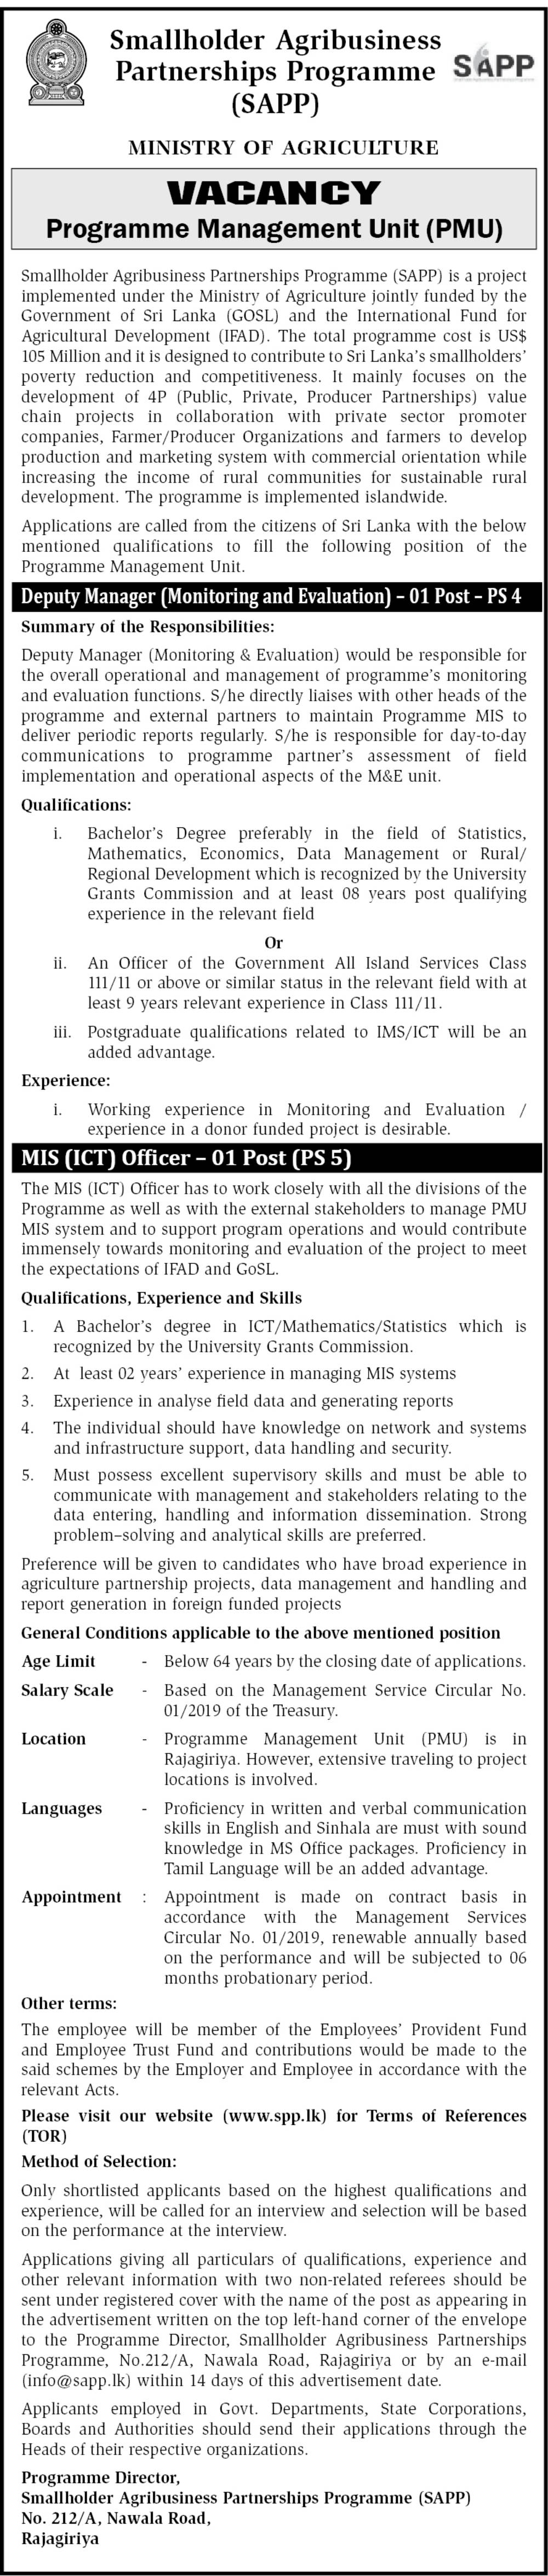 Deputy Manager, MIS (ICT) Officer